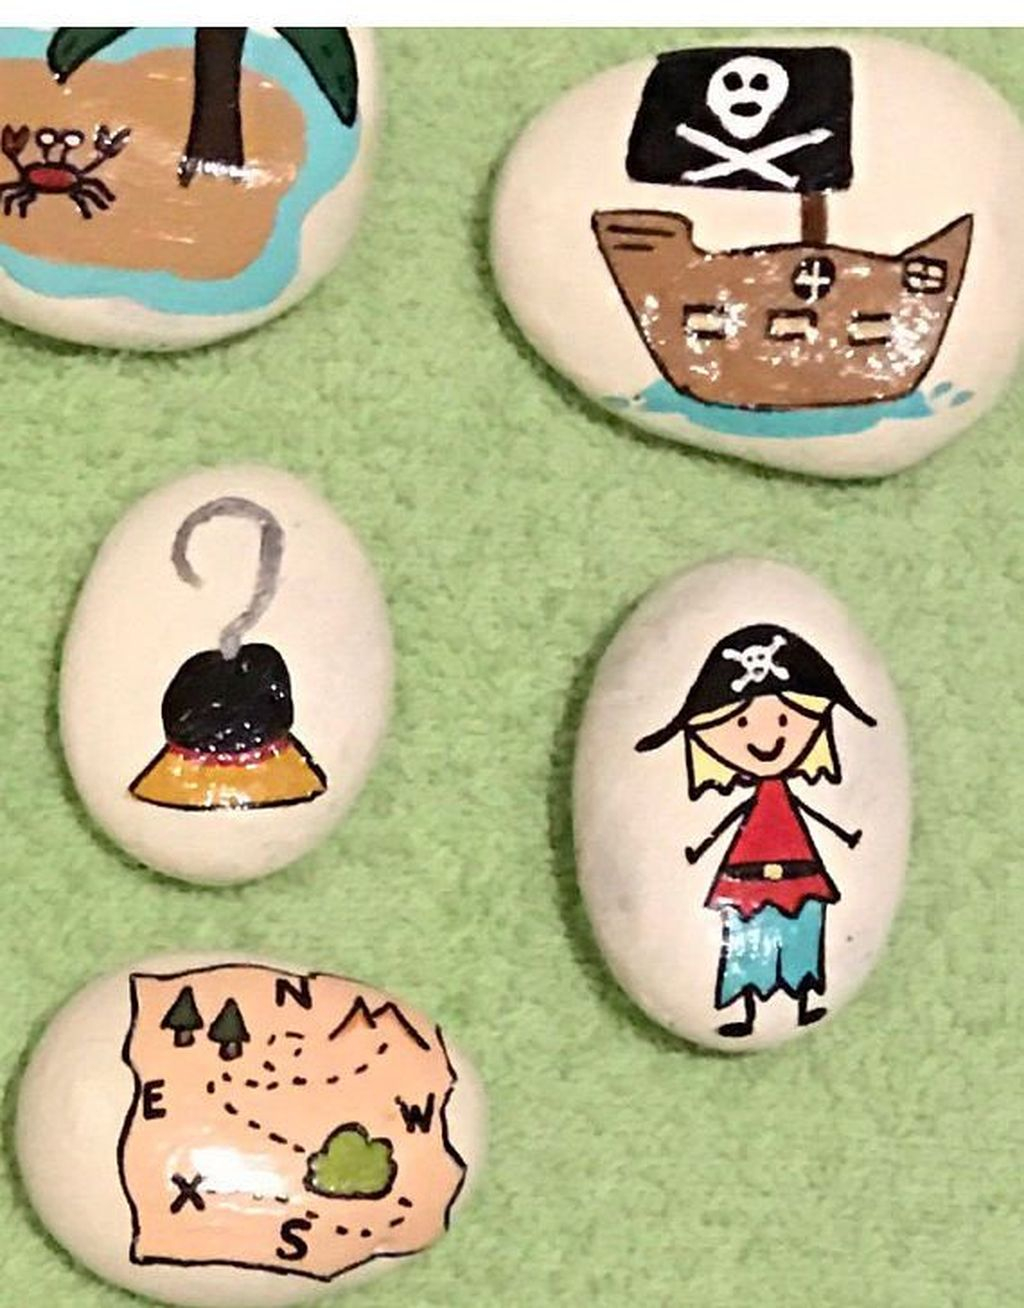 Affordable Diy Painted Rock Ideas For Home Decoration 34